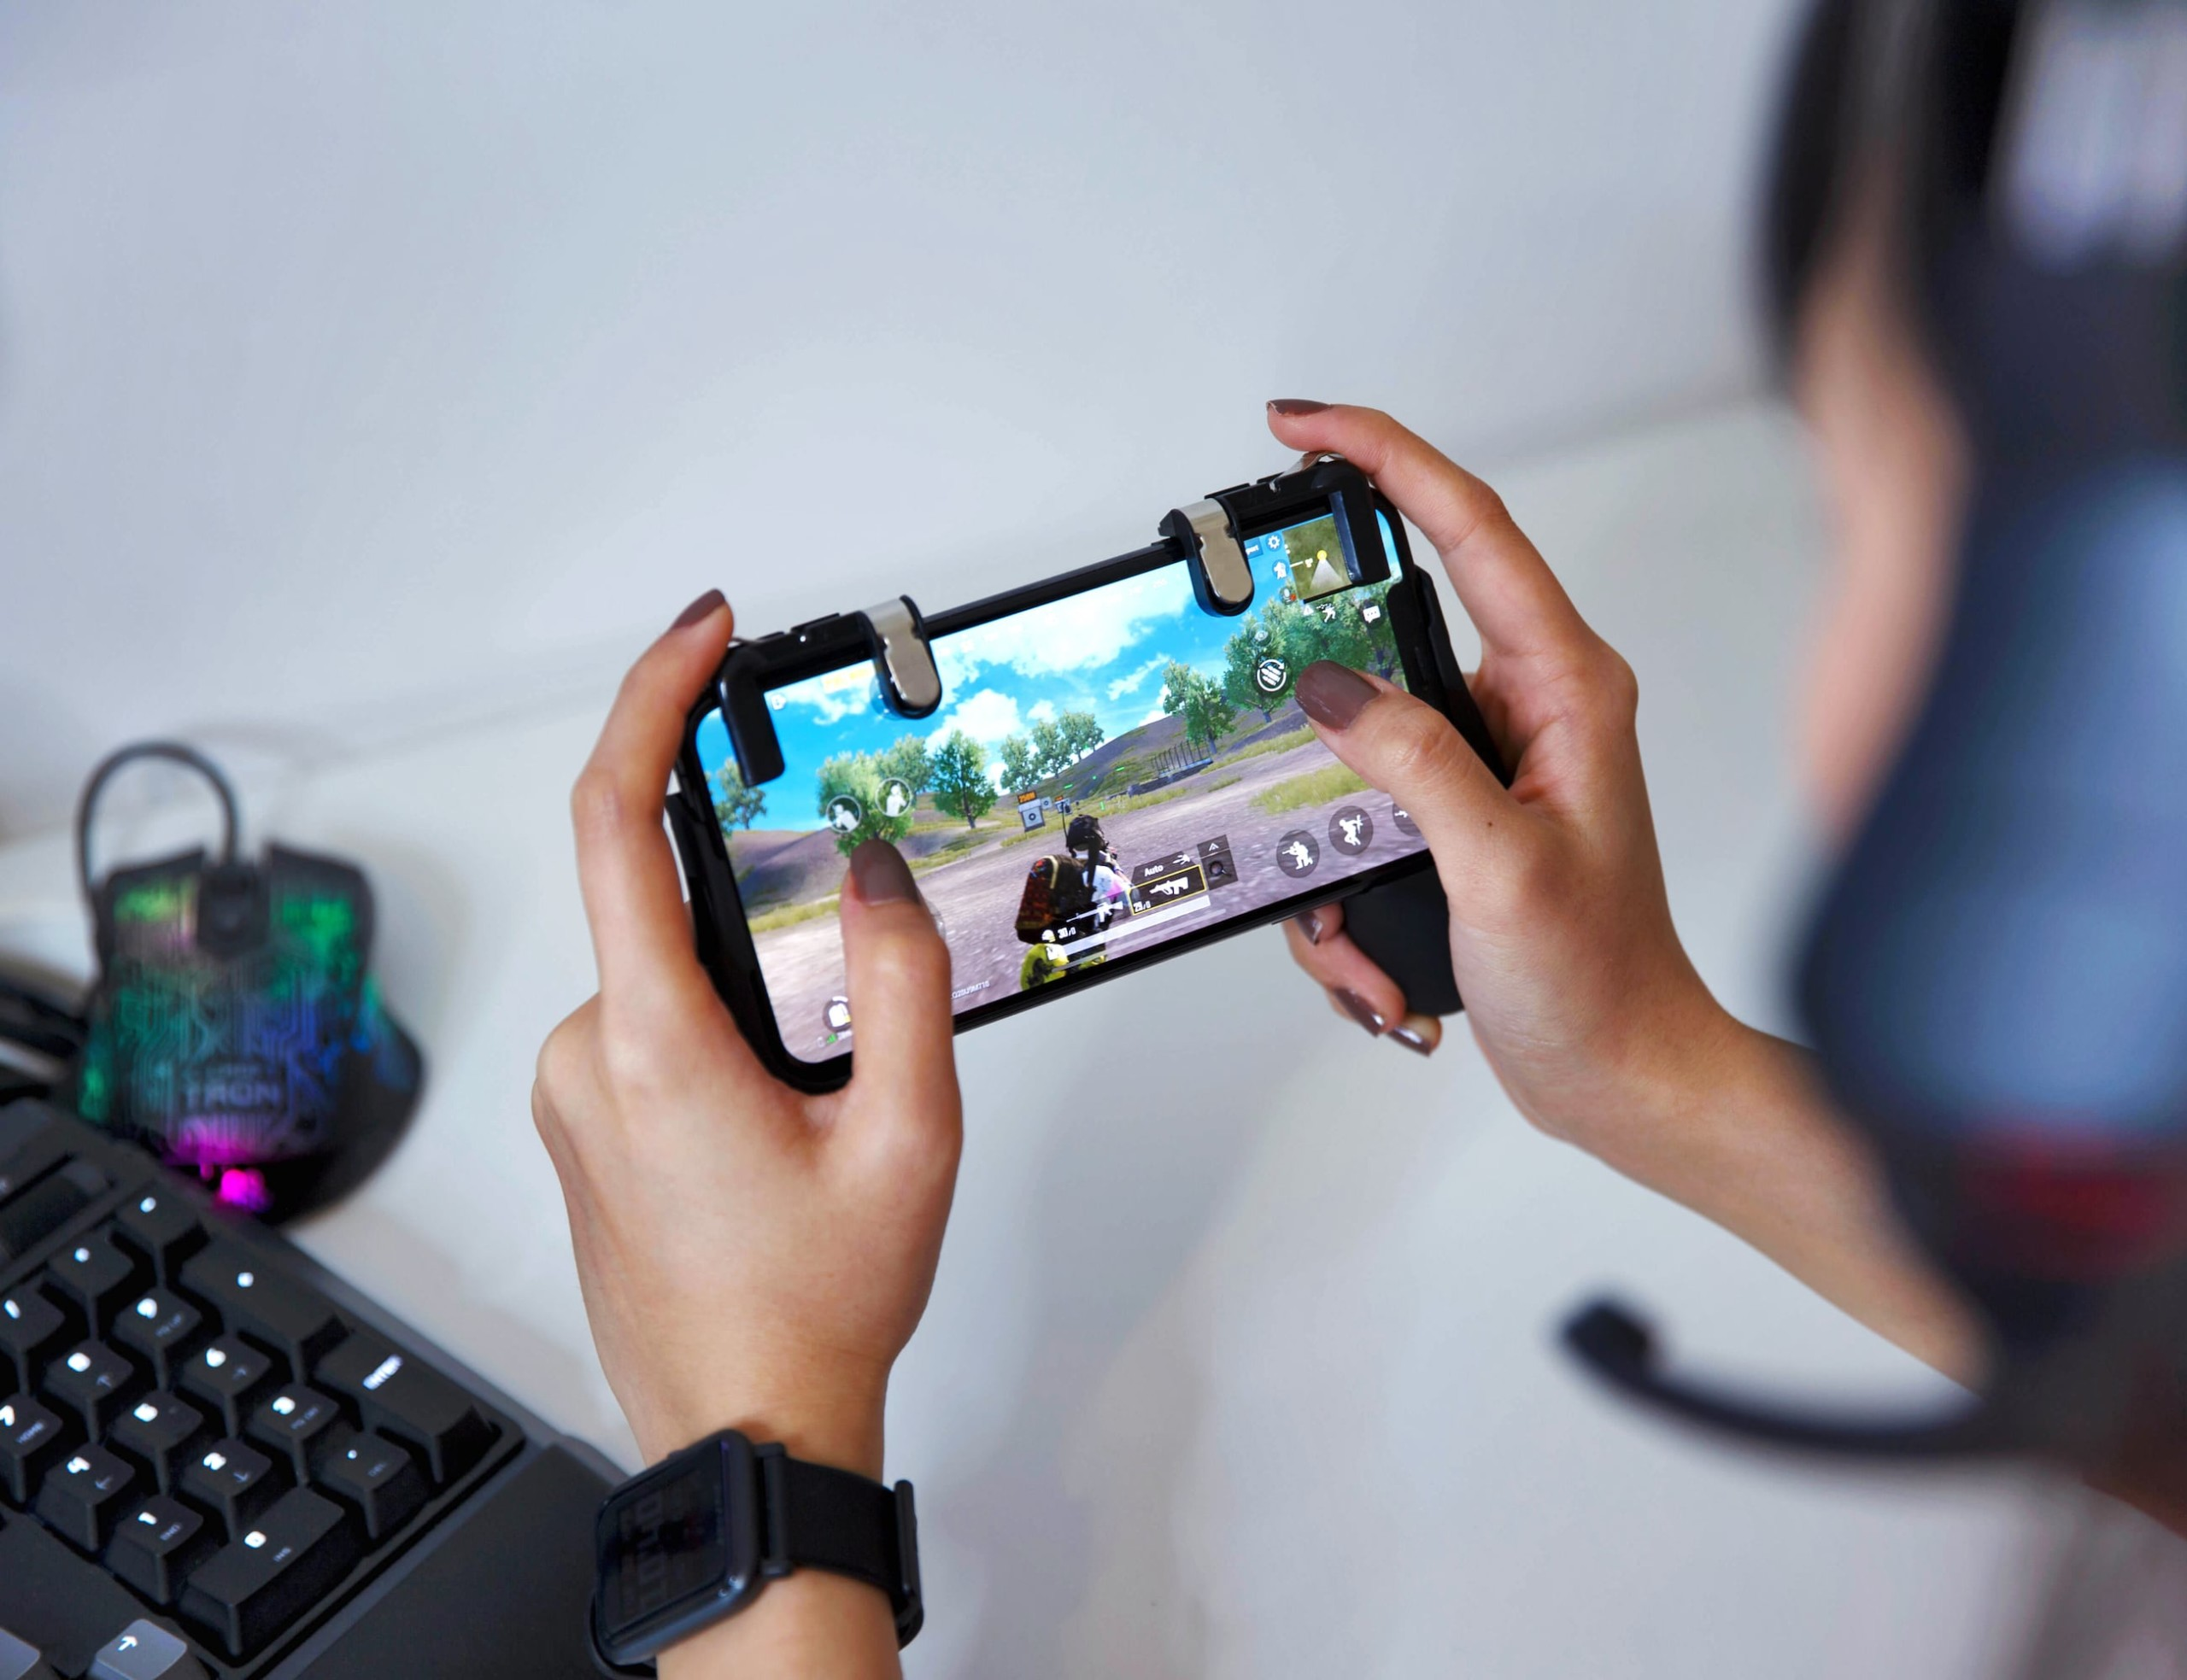 10 Must-have gaming accessories that will help you level up - StygianForce 02